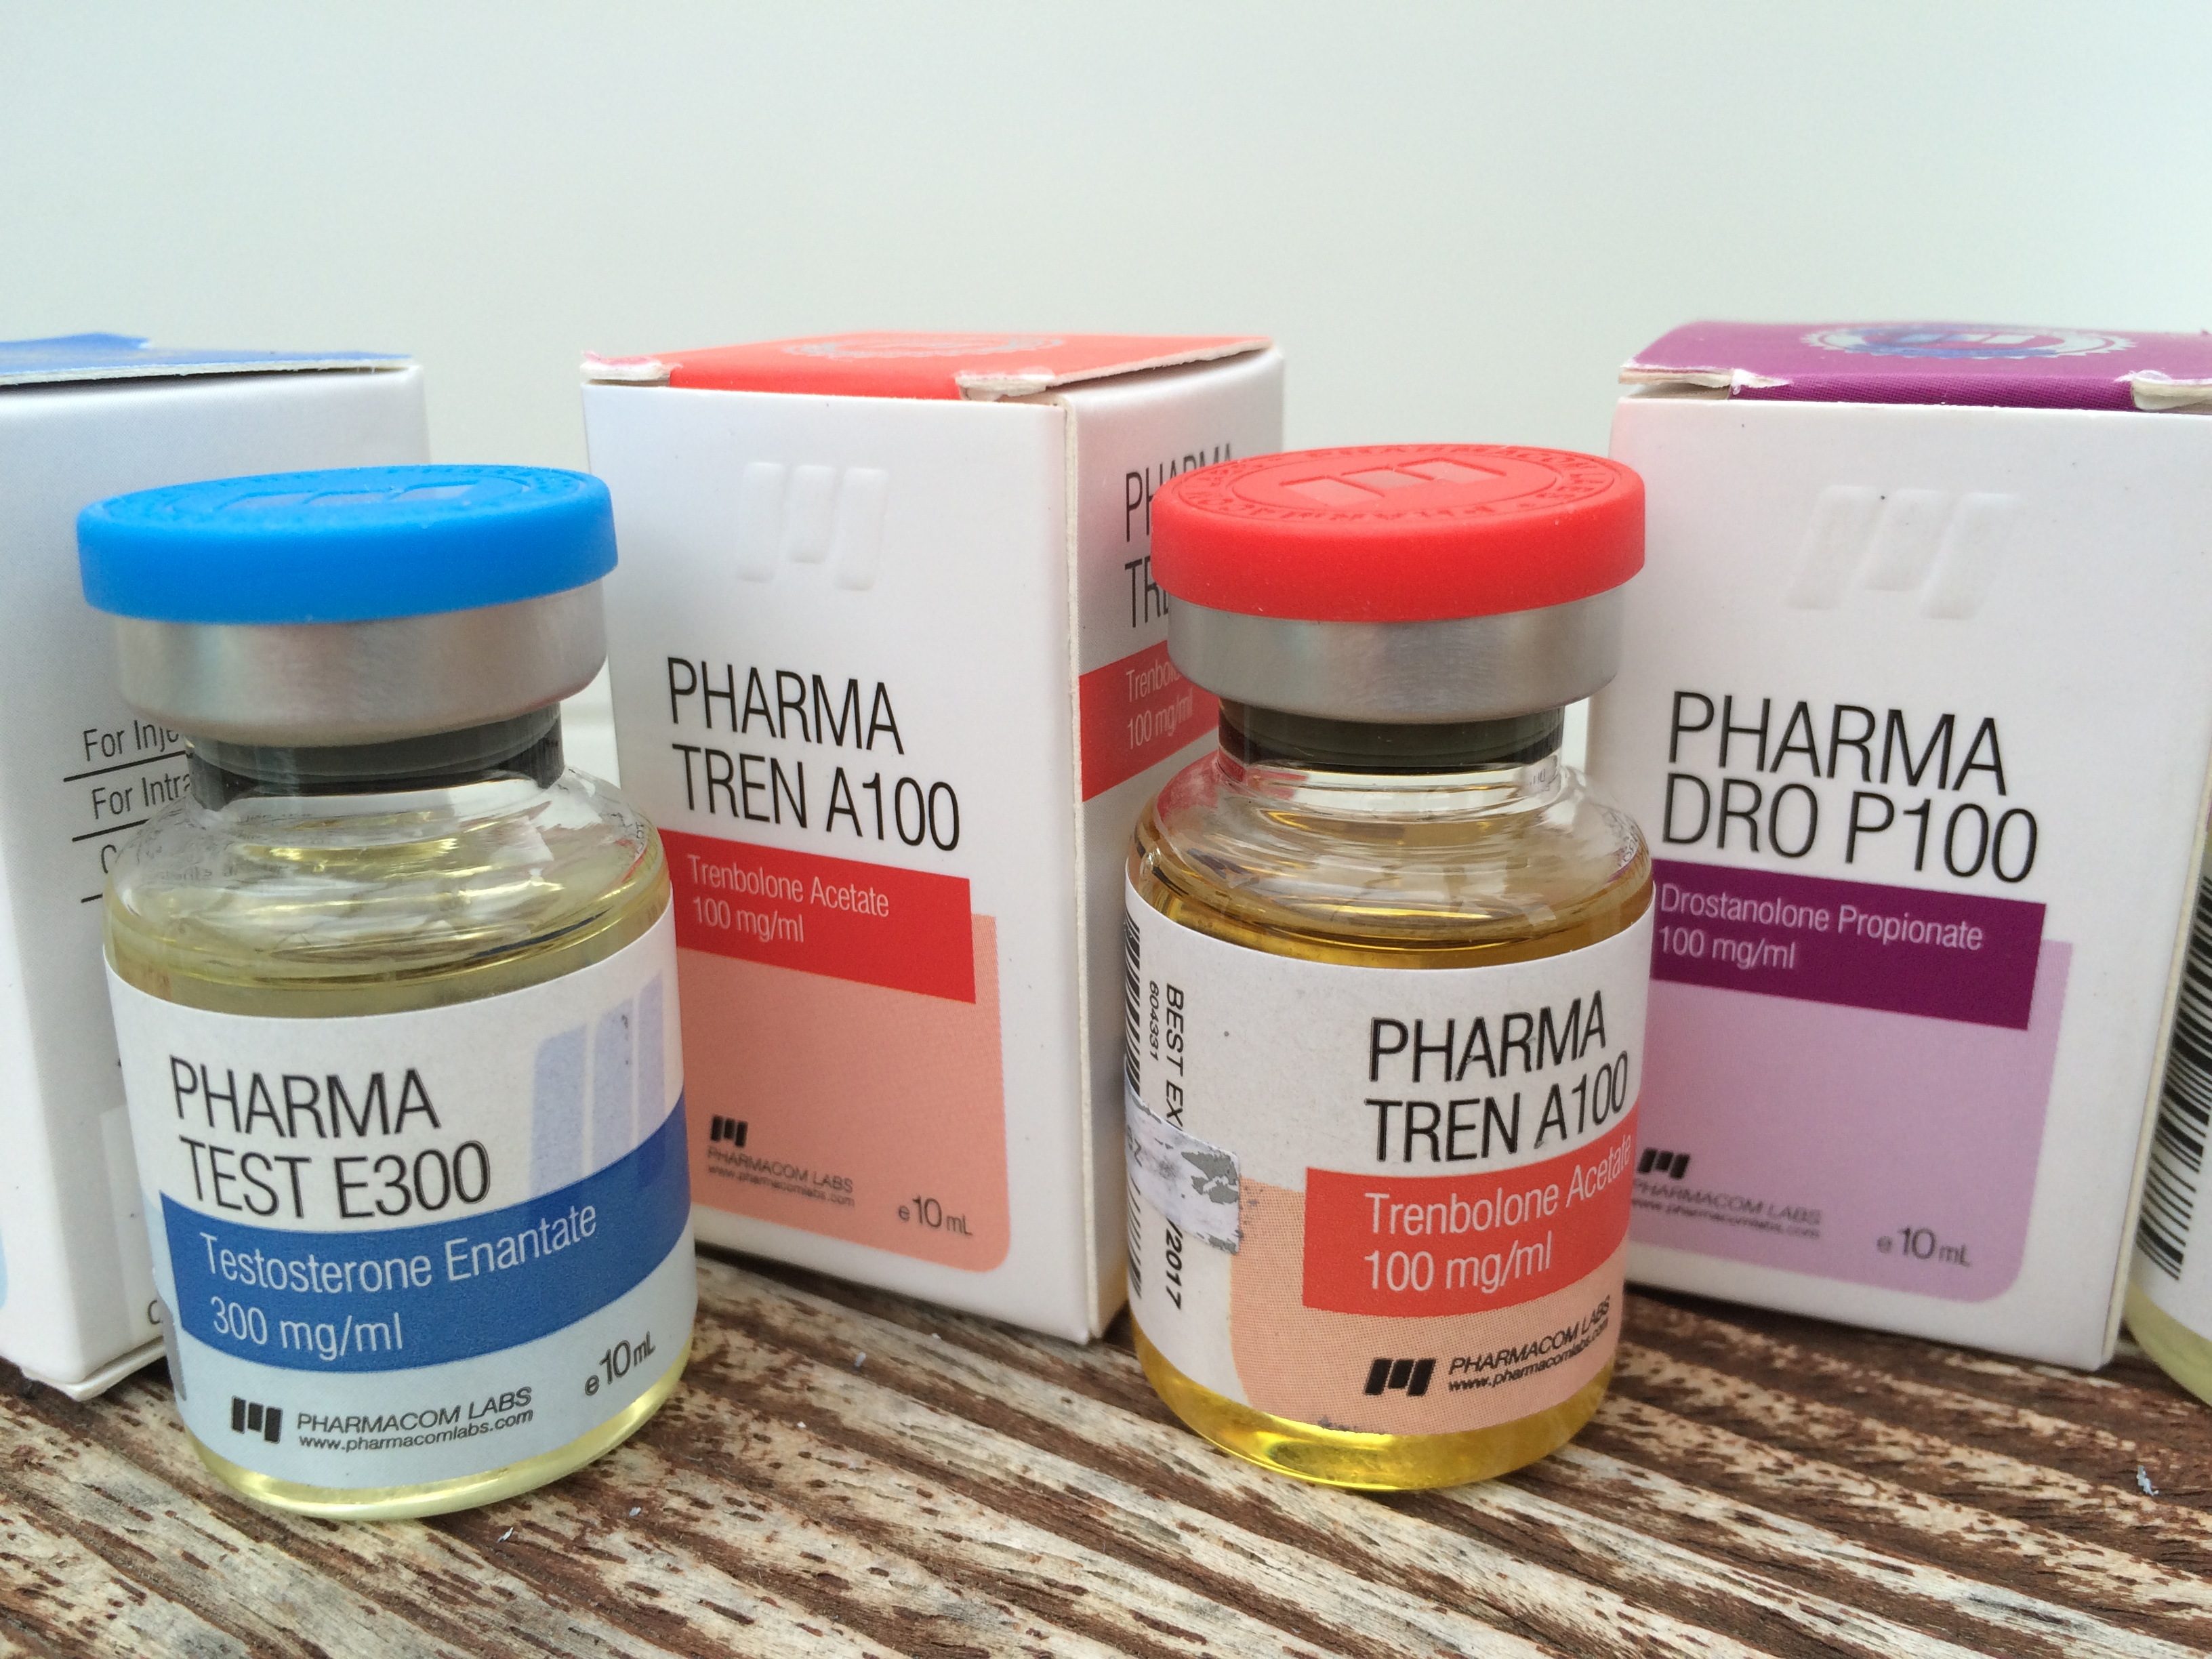 primobolan enanthate 100mg/ml